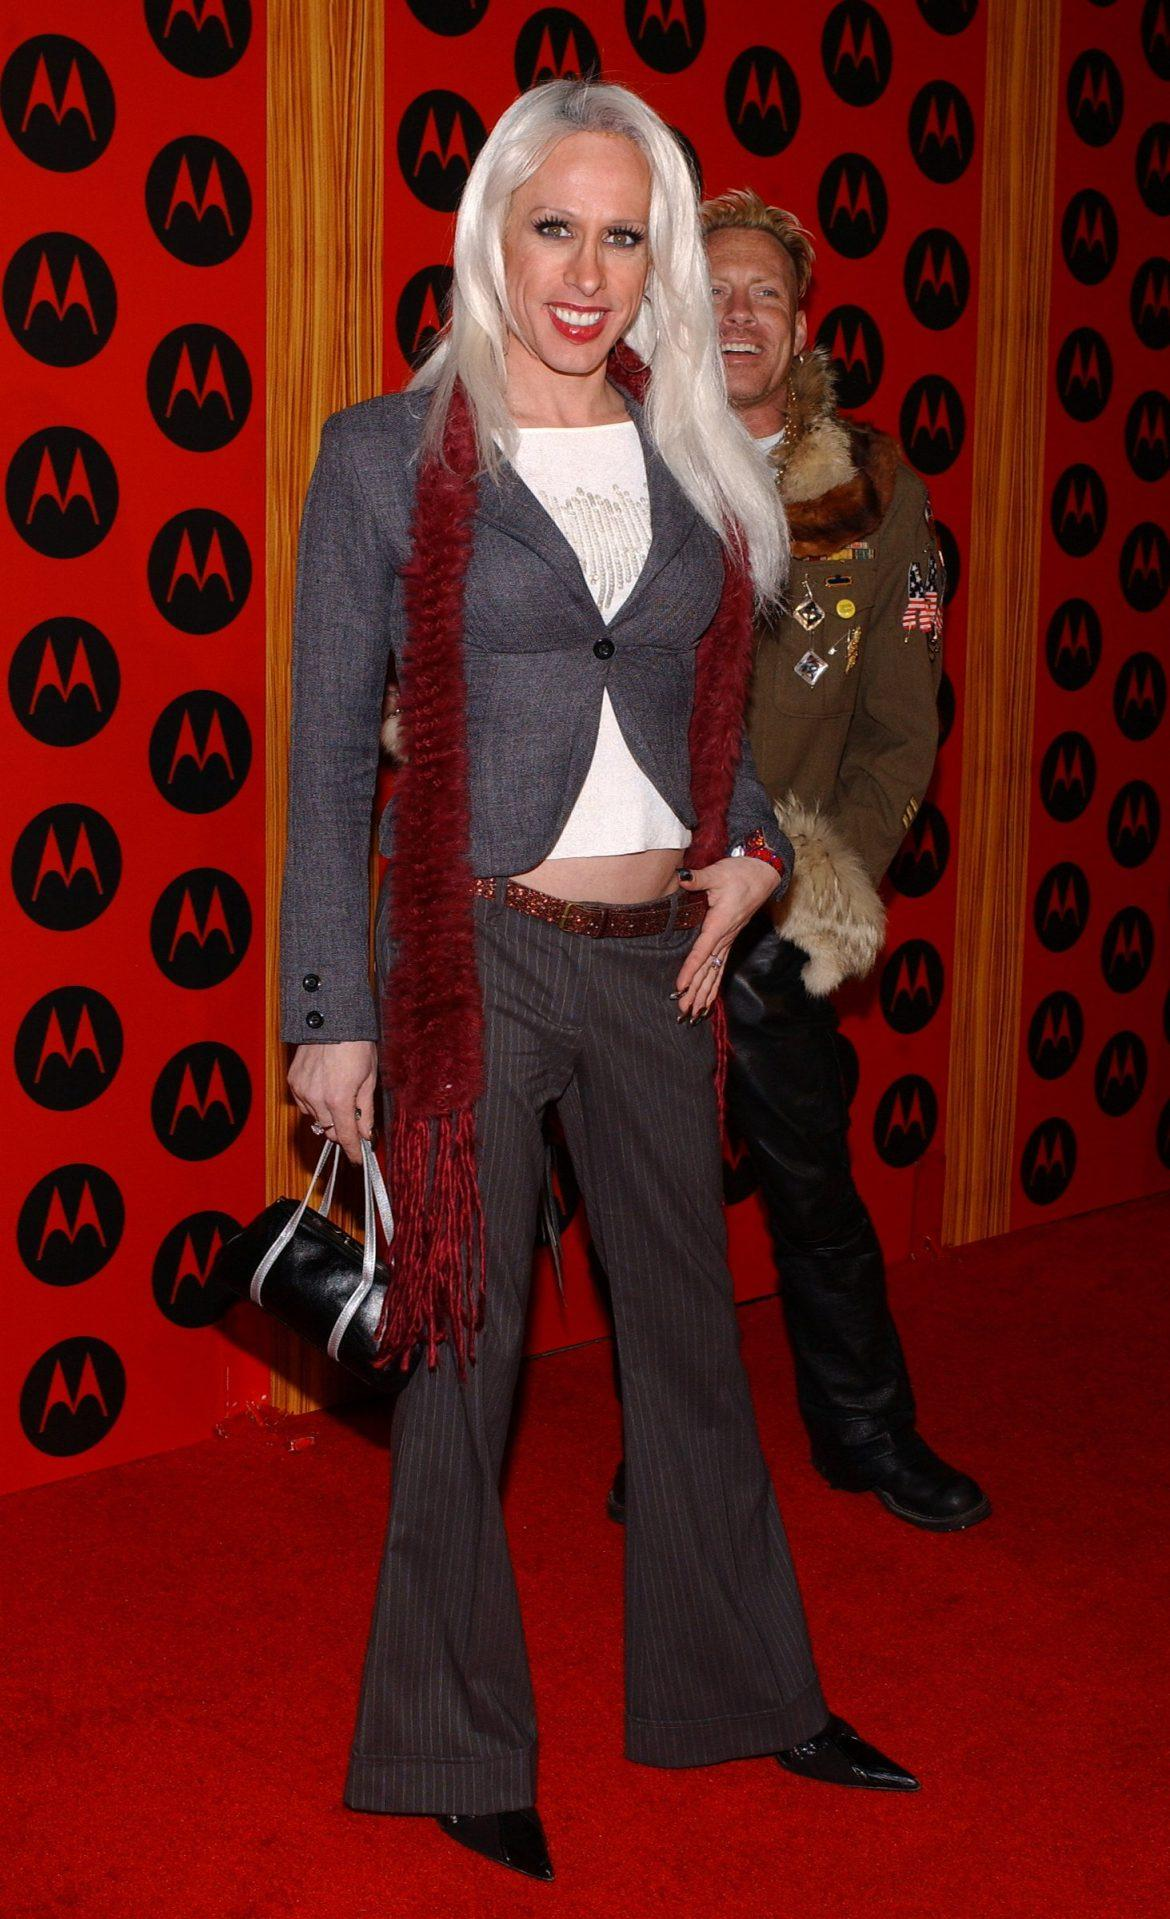 Alexis Arquette poses on the red carpet